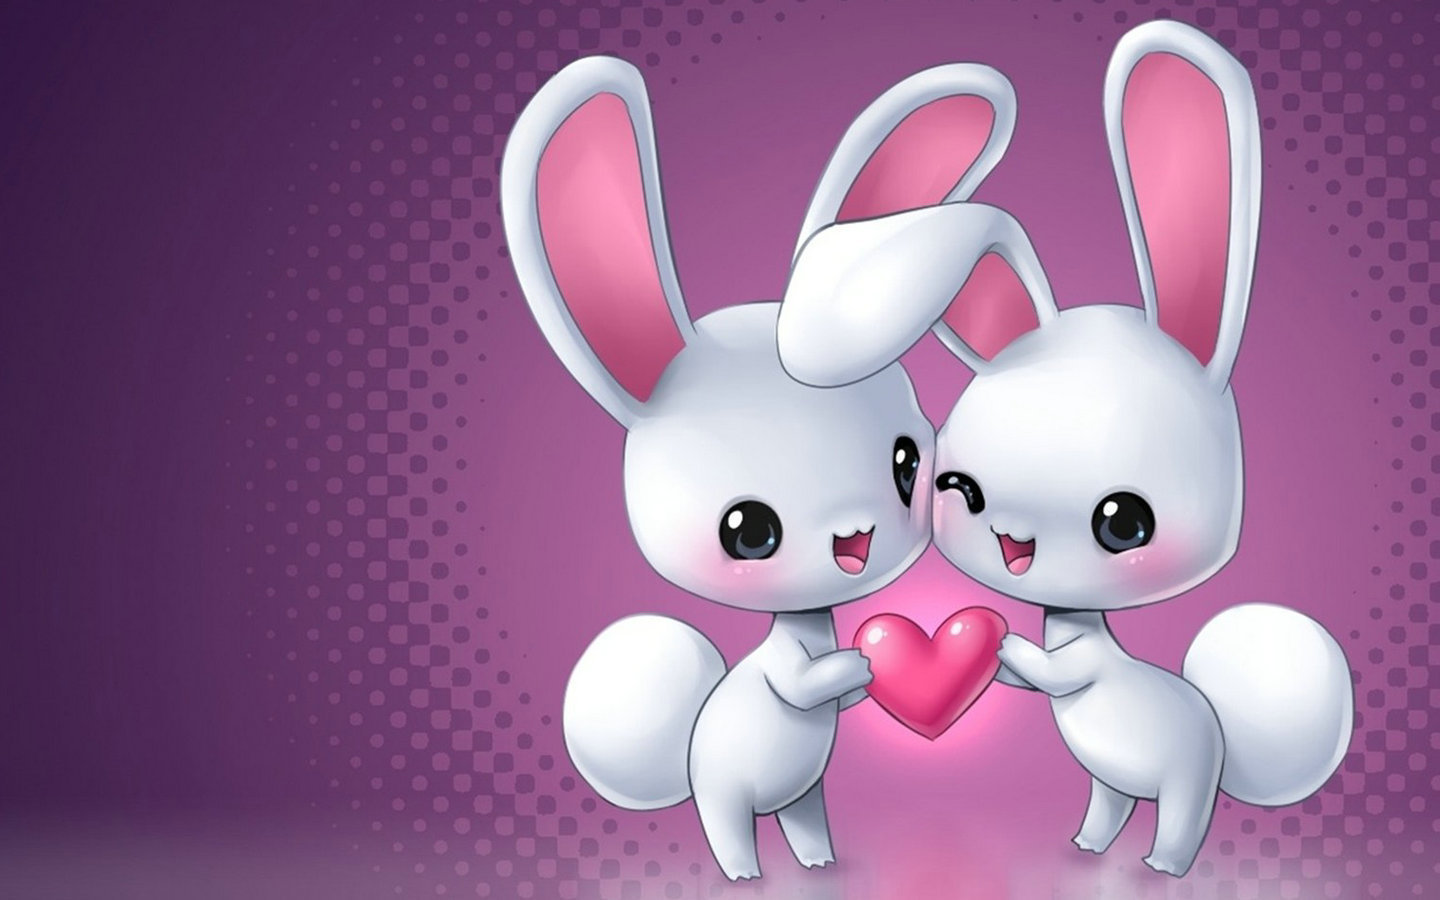 Most Romantic Love Wallpapers  Elsoar 1440x900